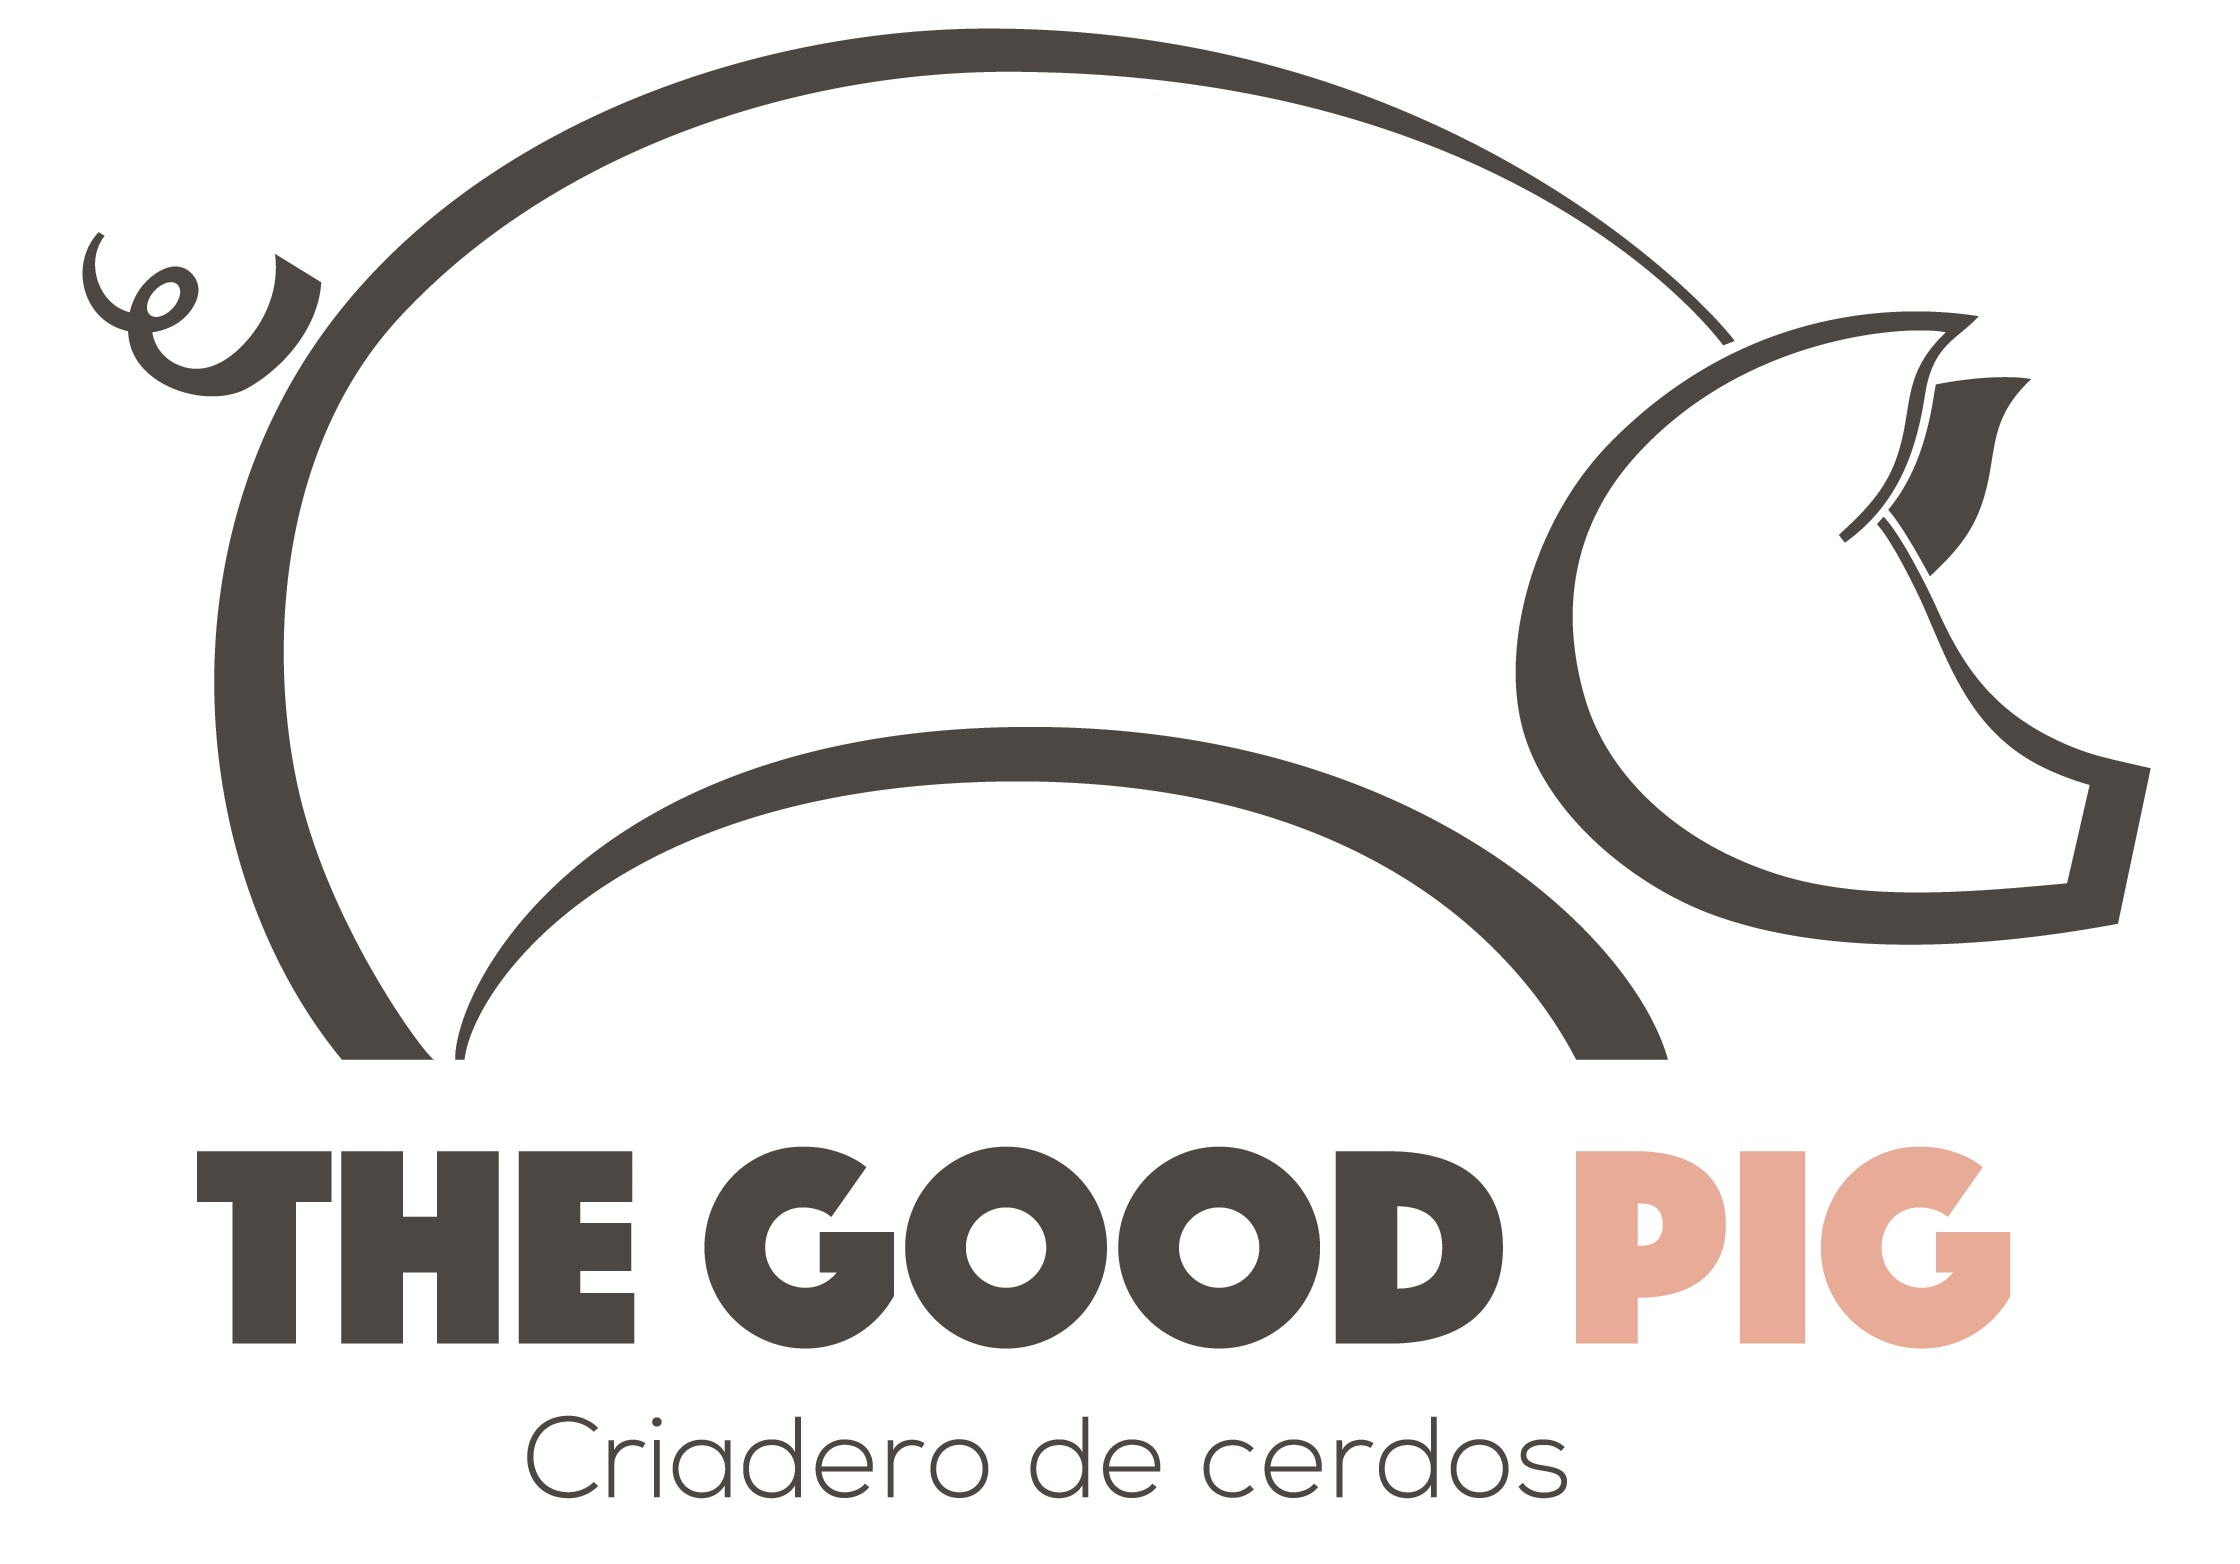 The Good Pig